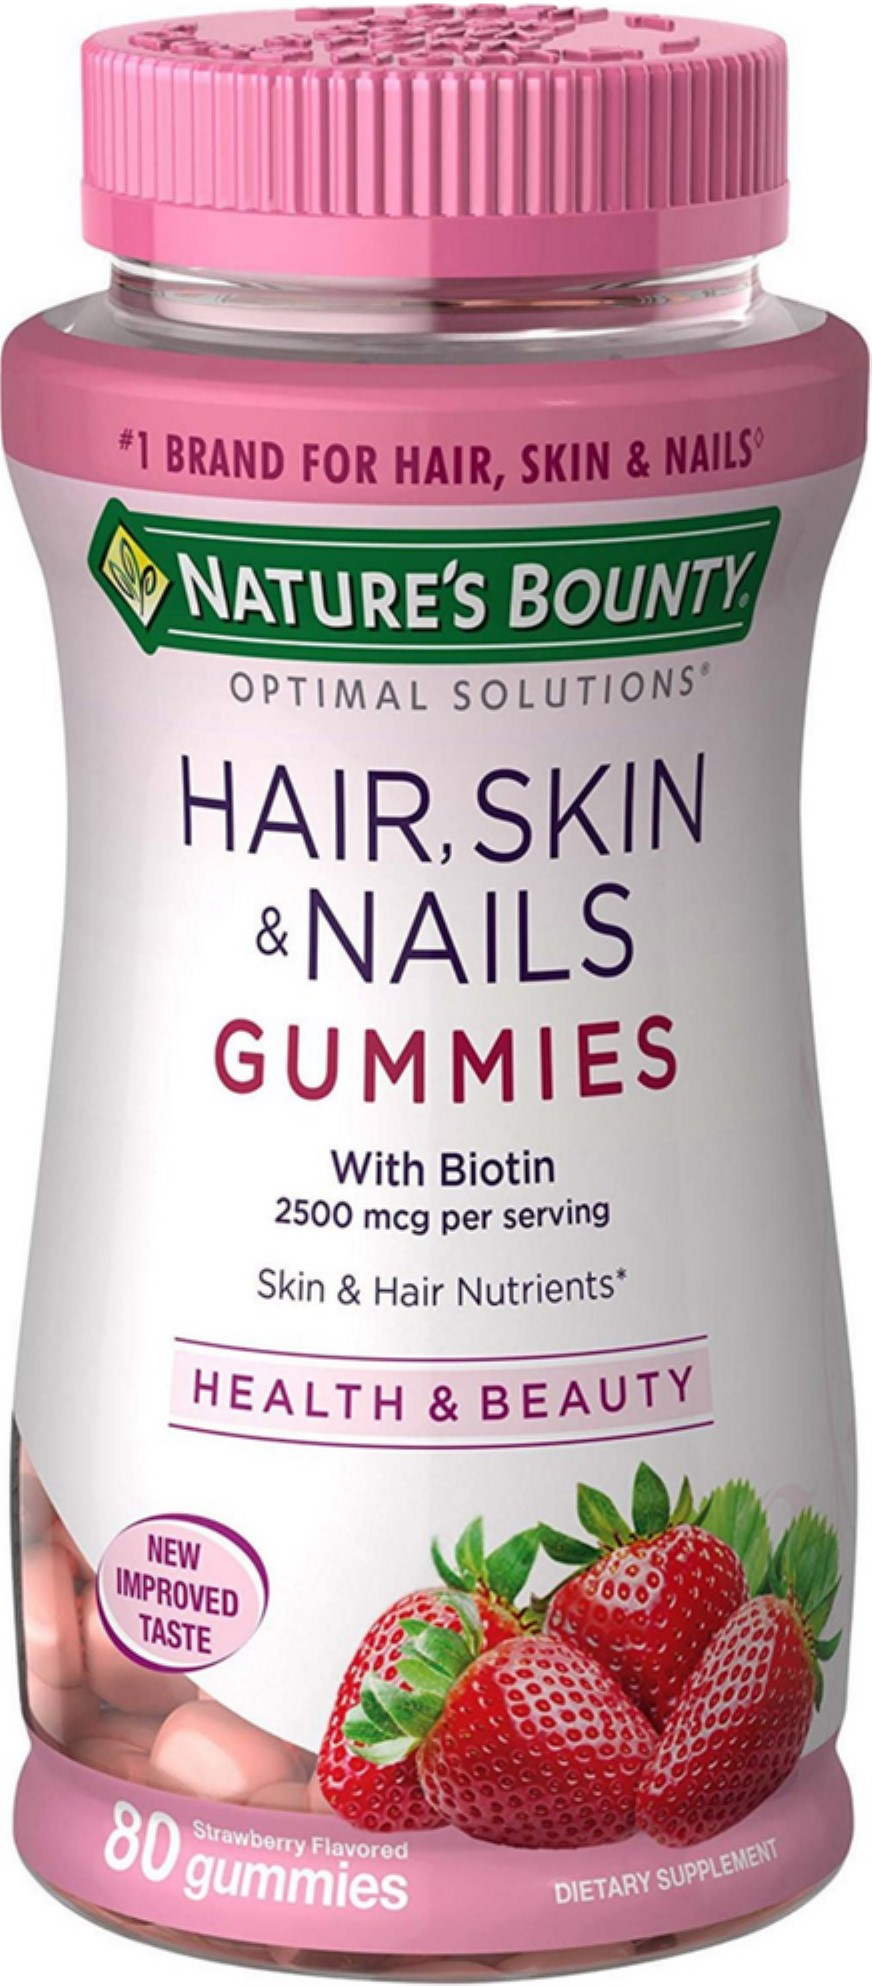 9 Pack   Nature's Bounty Optimal Solutions Hair, Skin and Nails Gummies  with Biotin, Strawberry Flavored 9 ea